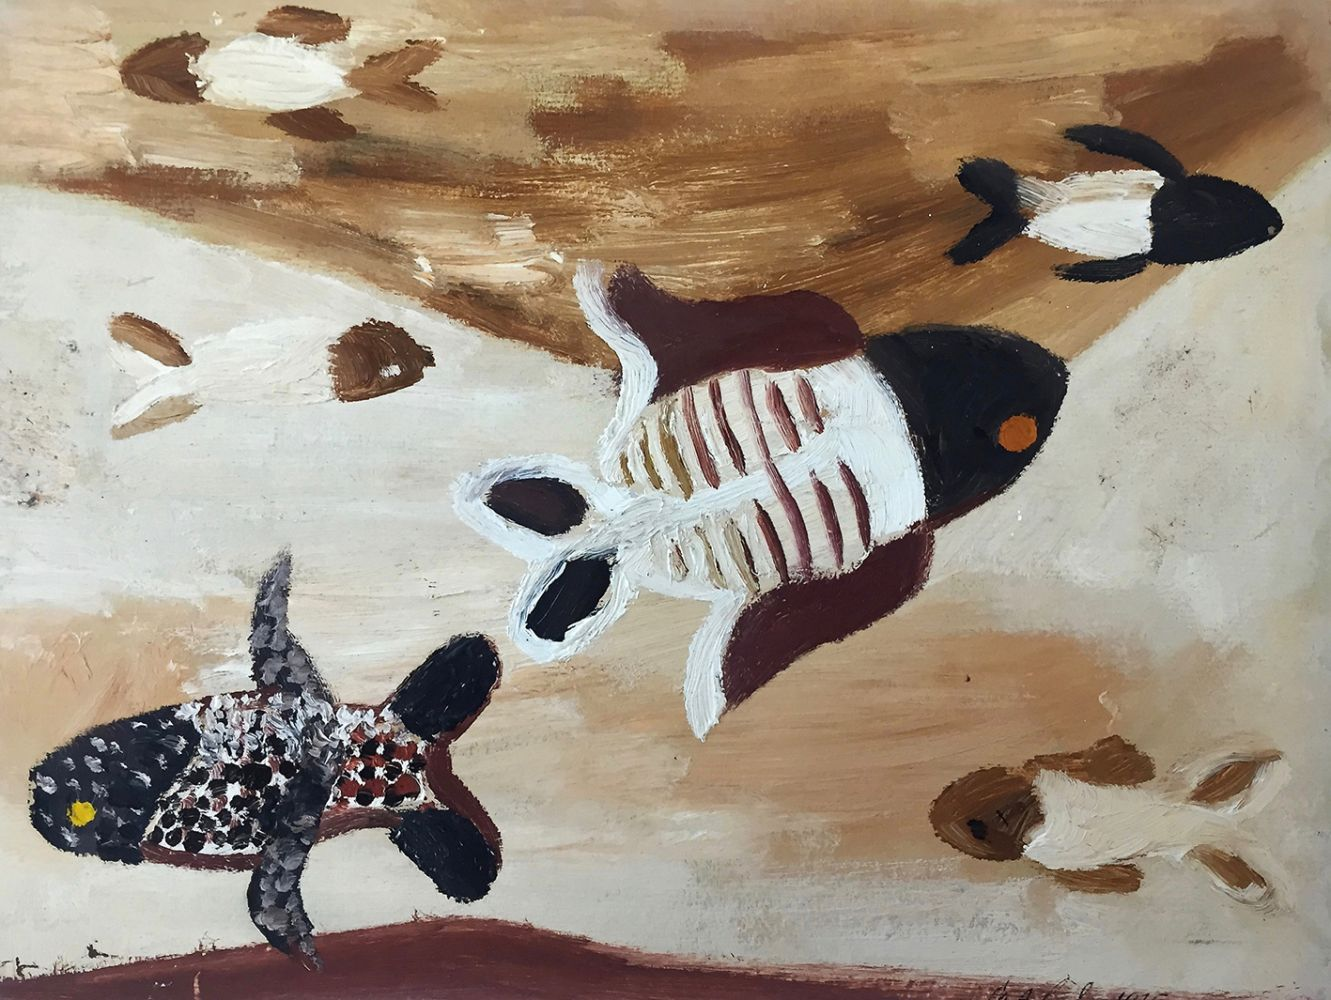 Curt Lahs | Fish | 1935 | oil on laid cardboard | signed and dated | 24.2 x 31.7